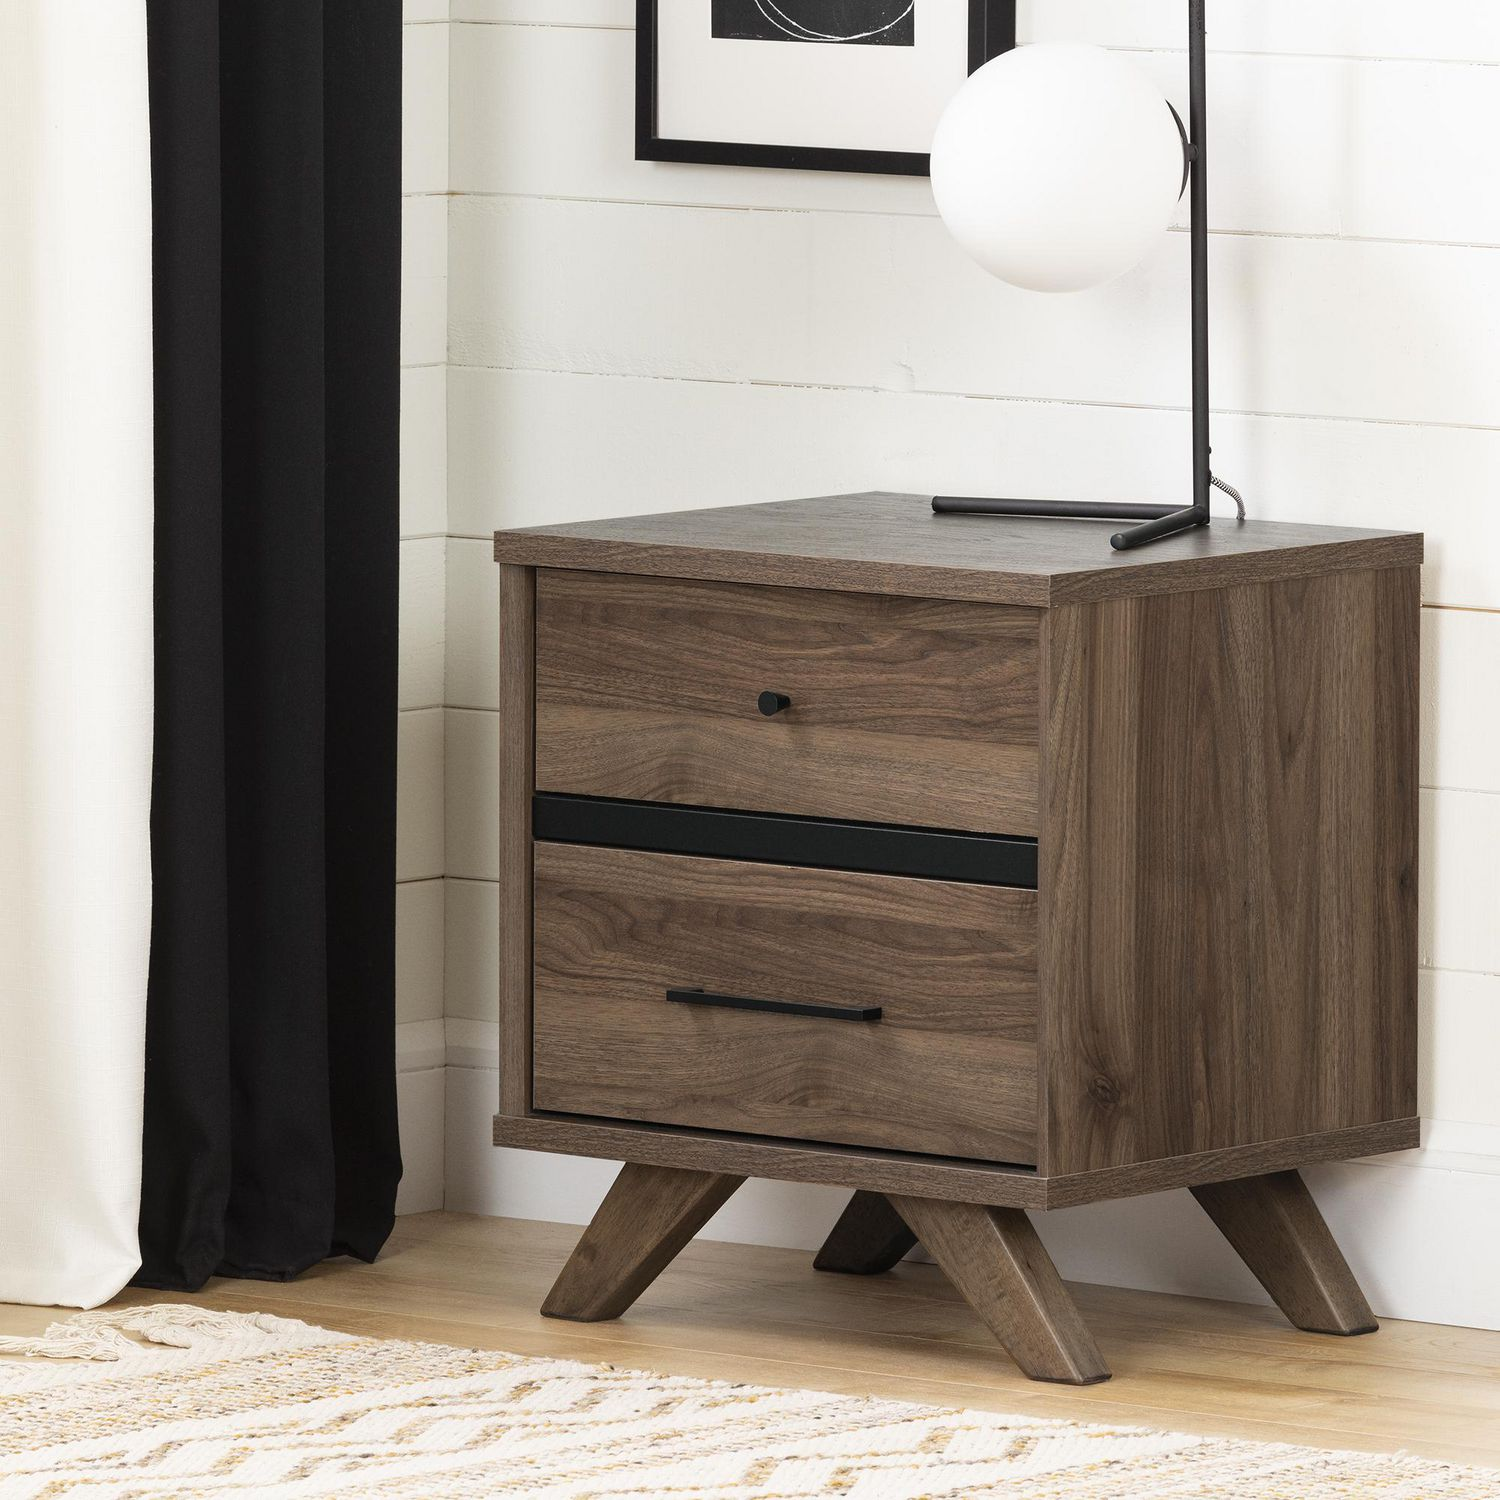 South Shore Flam 2 Drawer Nightstand Natural Walnut And Matte Black